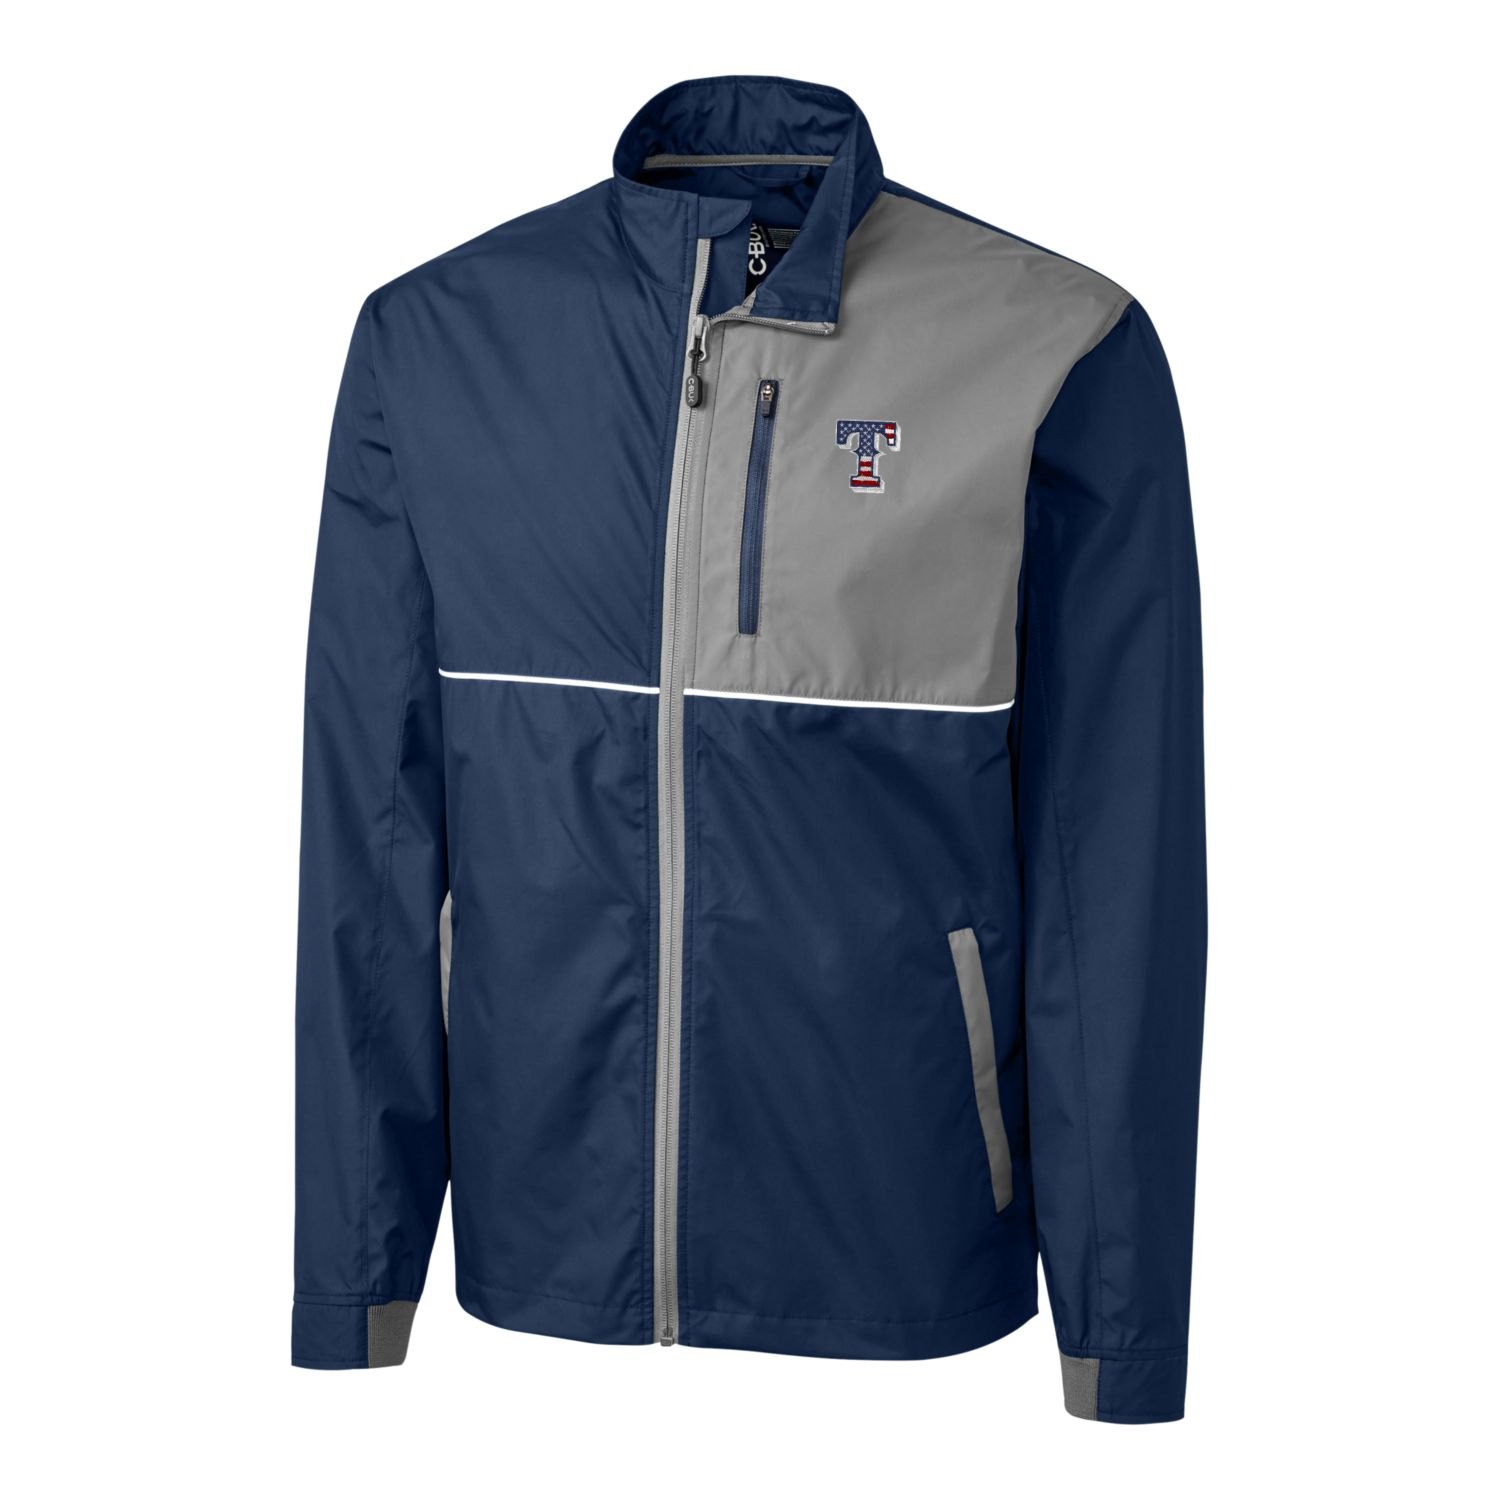 Texas Rangers Cutter & Buck Stars & Stripes Full-Zip Oakridge Windbreaker Jacket - Navy/Gray